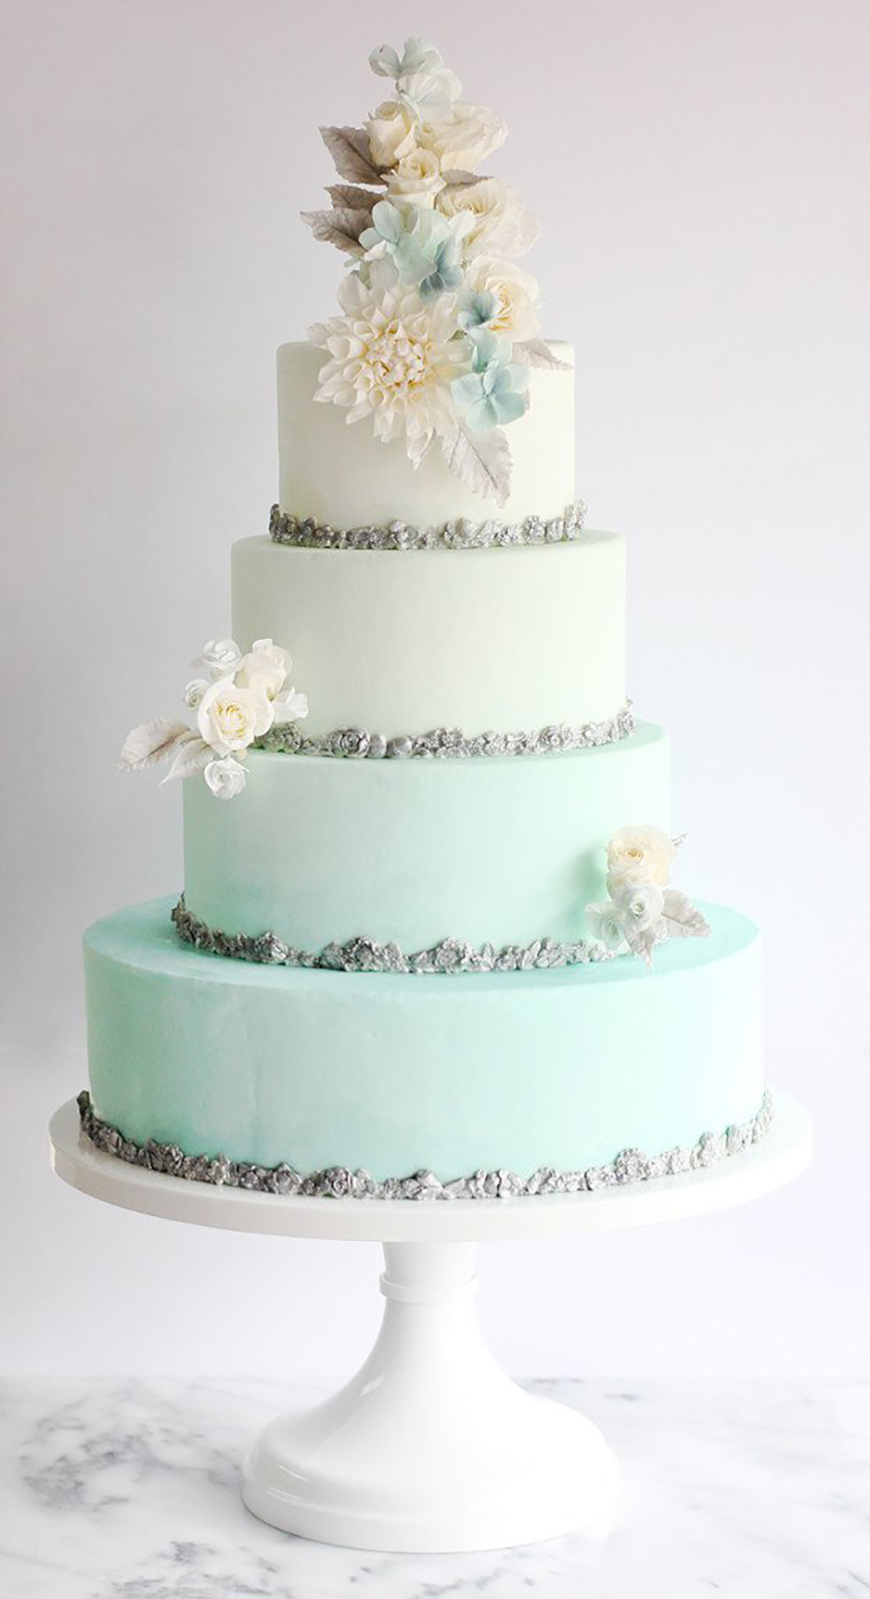 22 Wedding Cakes Fit for a Fairy Tale - A winter's tale | CHWV